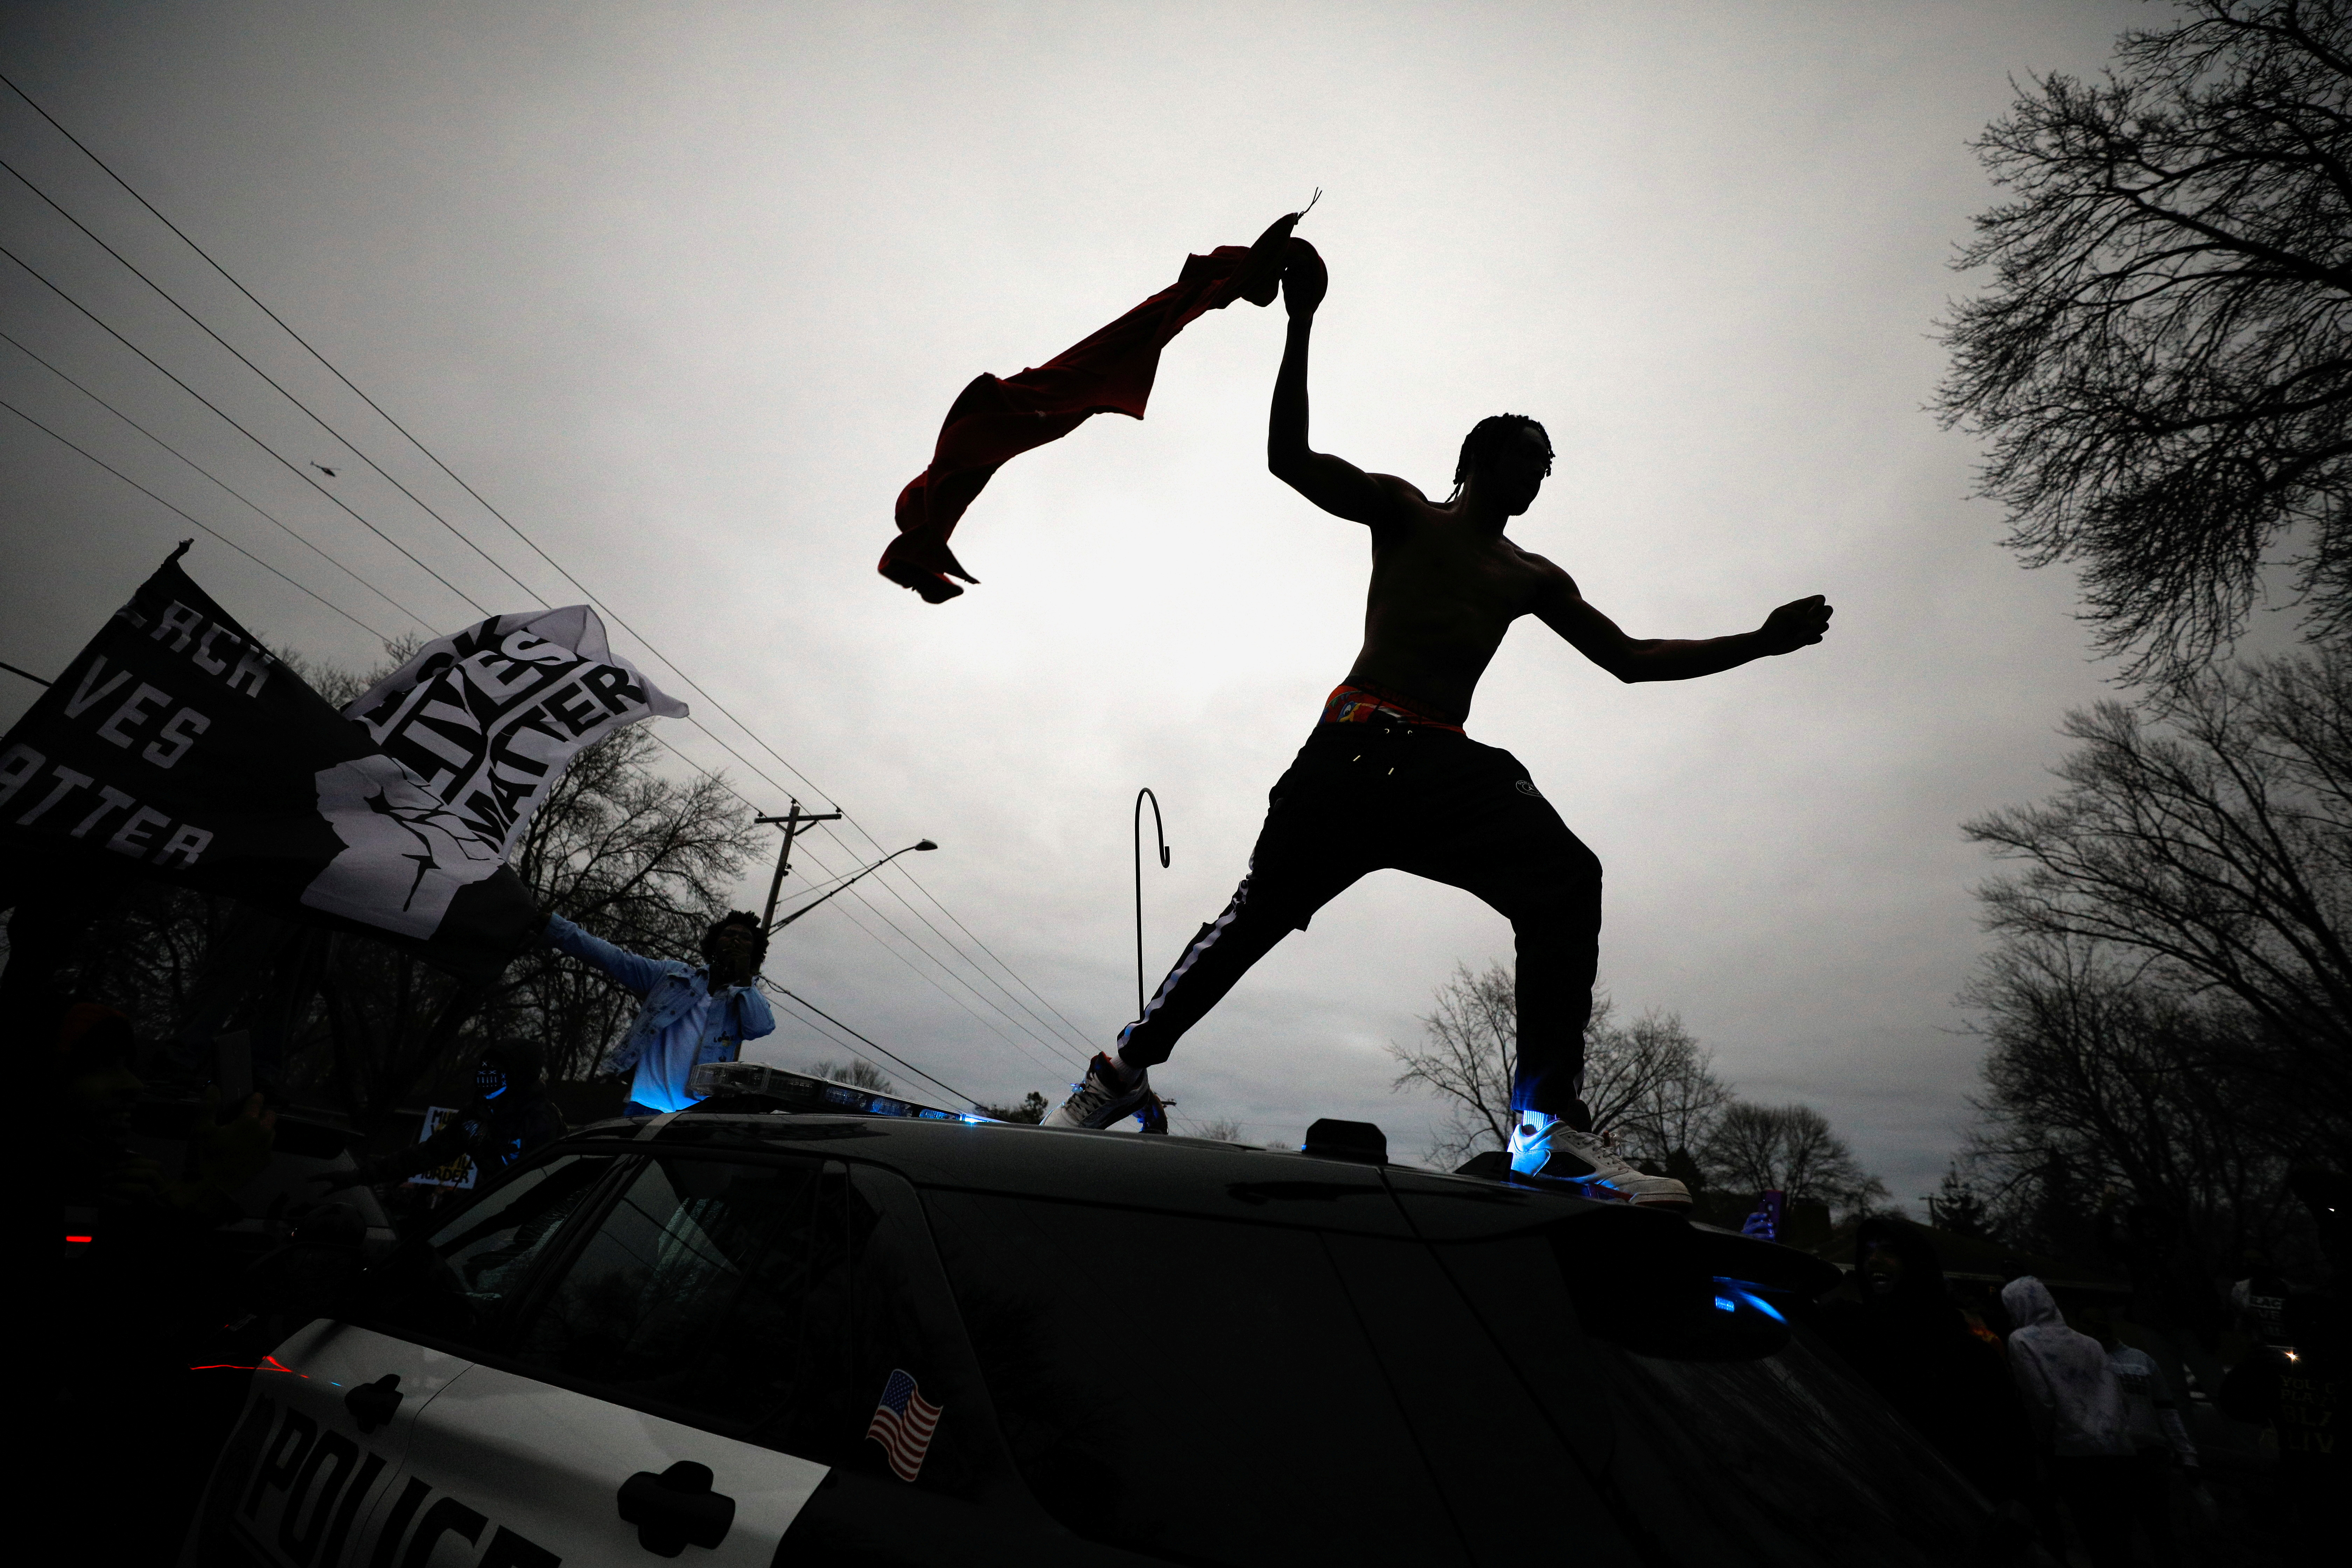 A demonstrator jumps off a police cruiser during a protest after police allegedly shot and killed a man, who local media report is identified by the victim's mother as Daunte Wright, in Brooklyn Center, Minnesota, U.S., April 11, 2021. REUTERS/Nick Pfosi     T